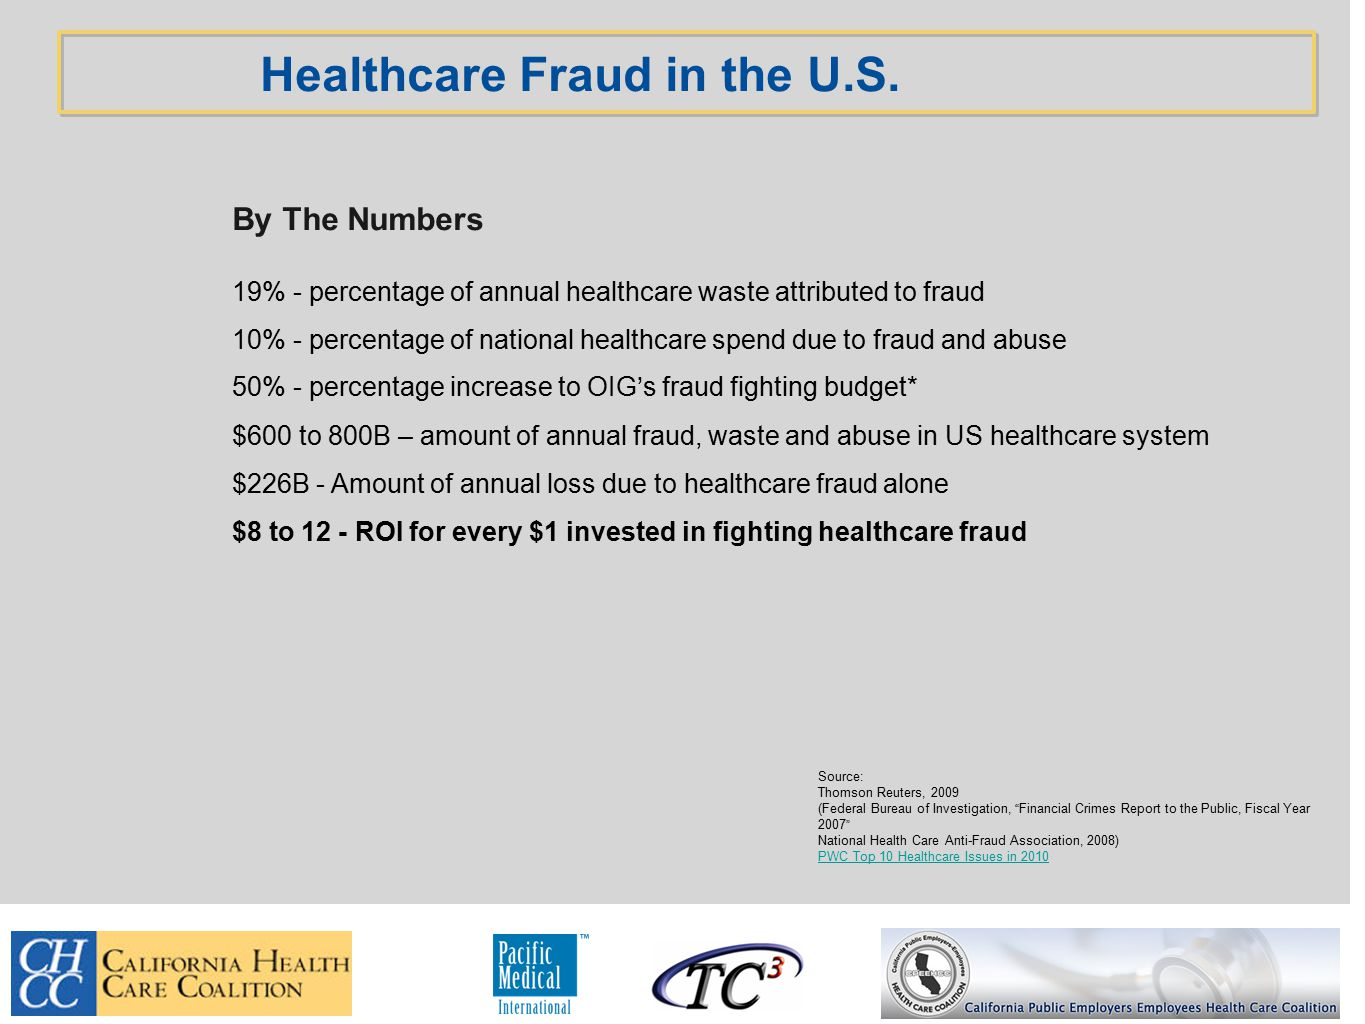 Healthcare Fraud in the U.S.